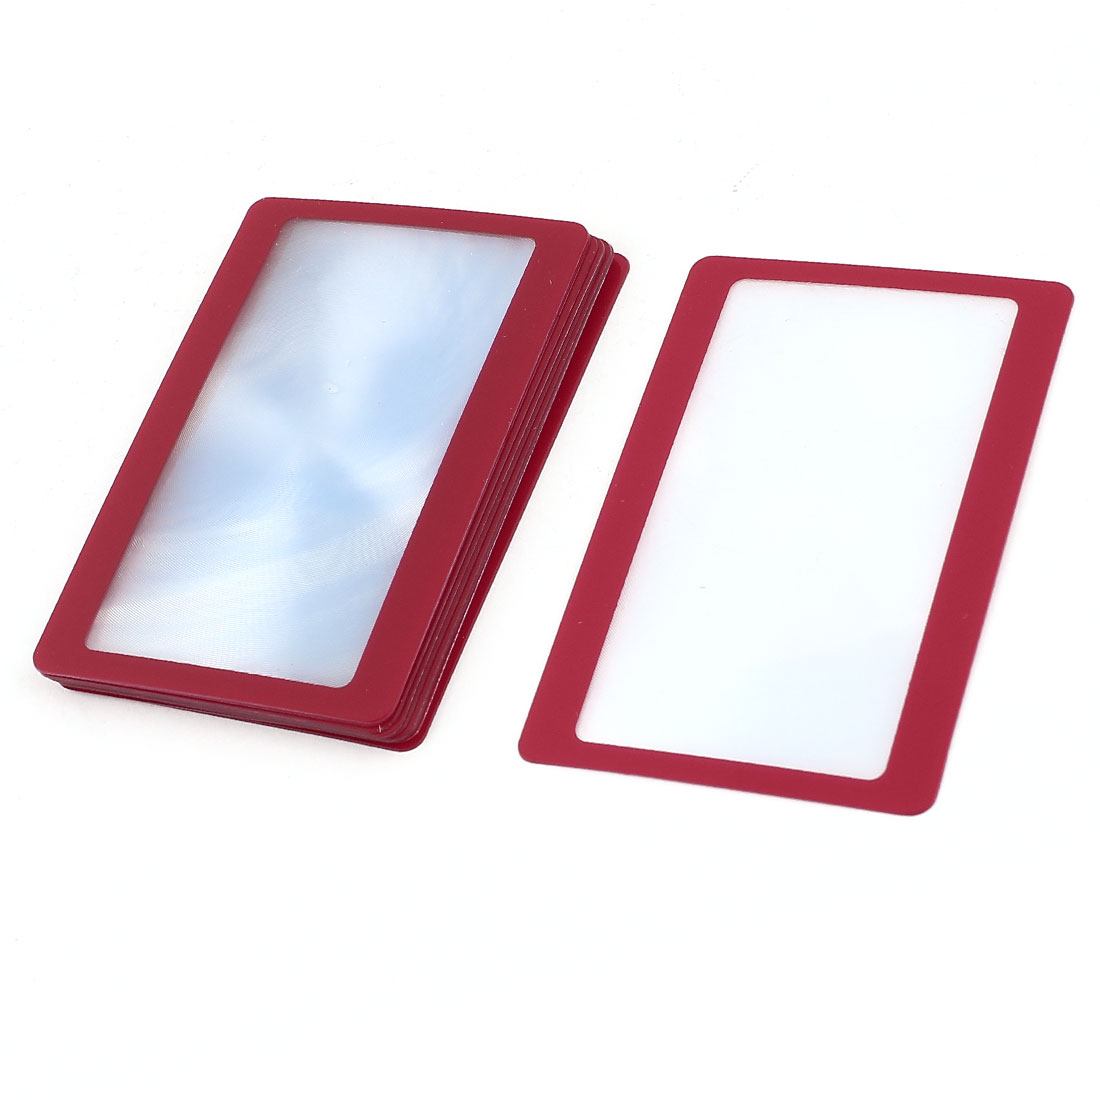 10 Pcs Red Frame Credit Card Reading Magnifier 3x Magnifying Wallet Loupe Lens